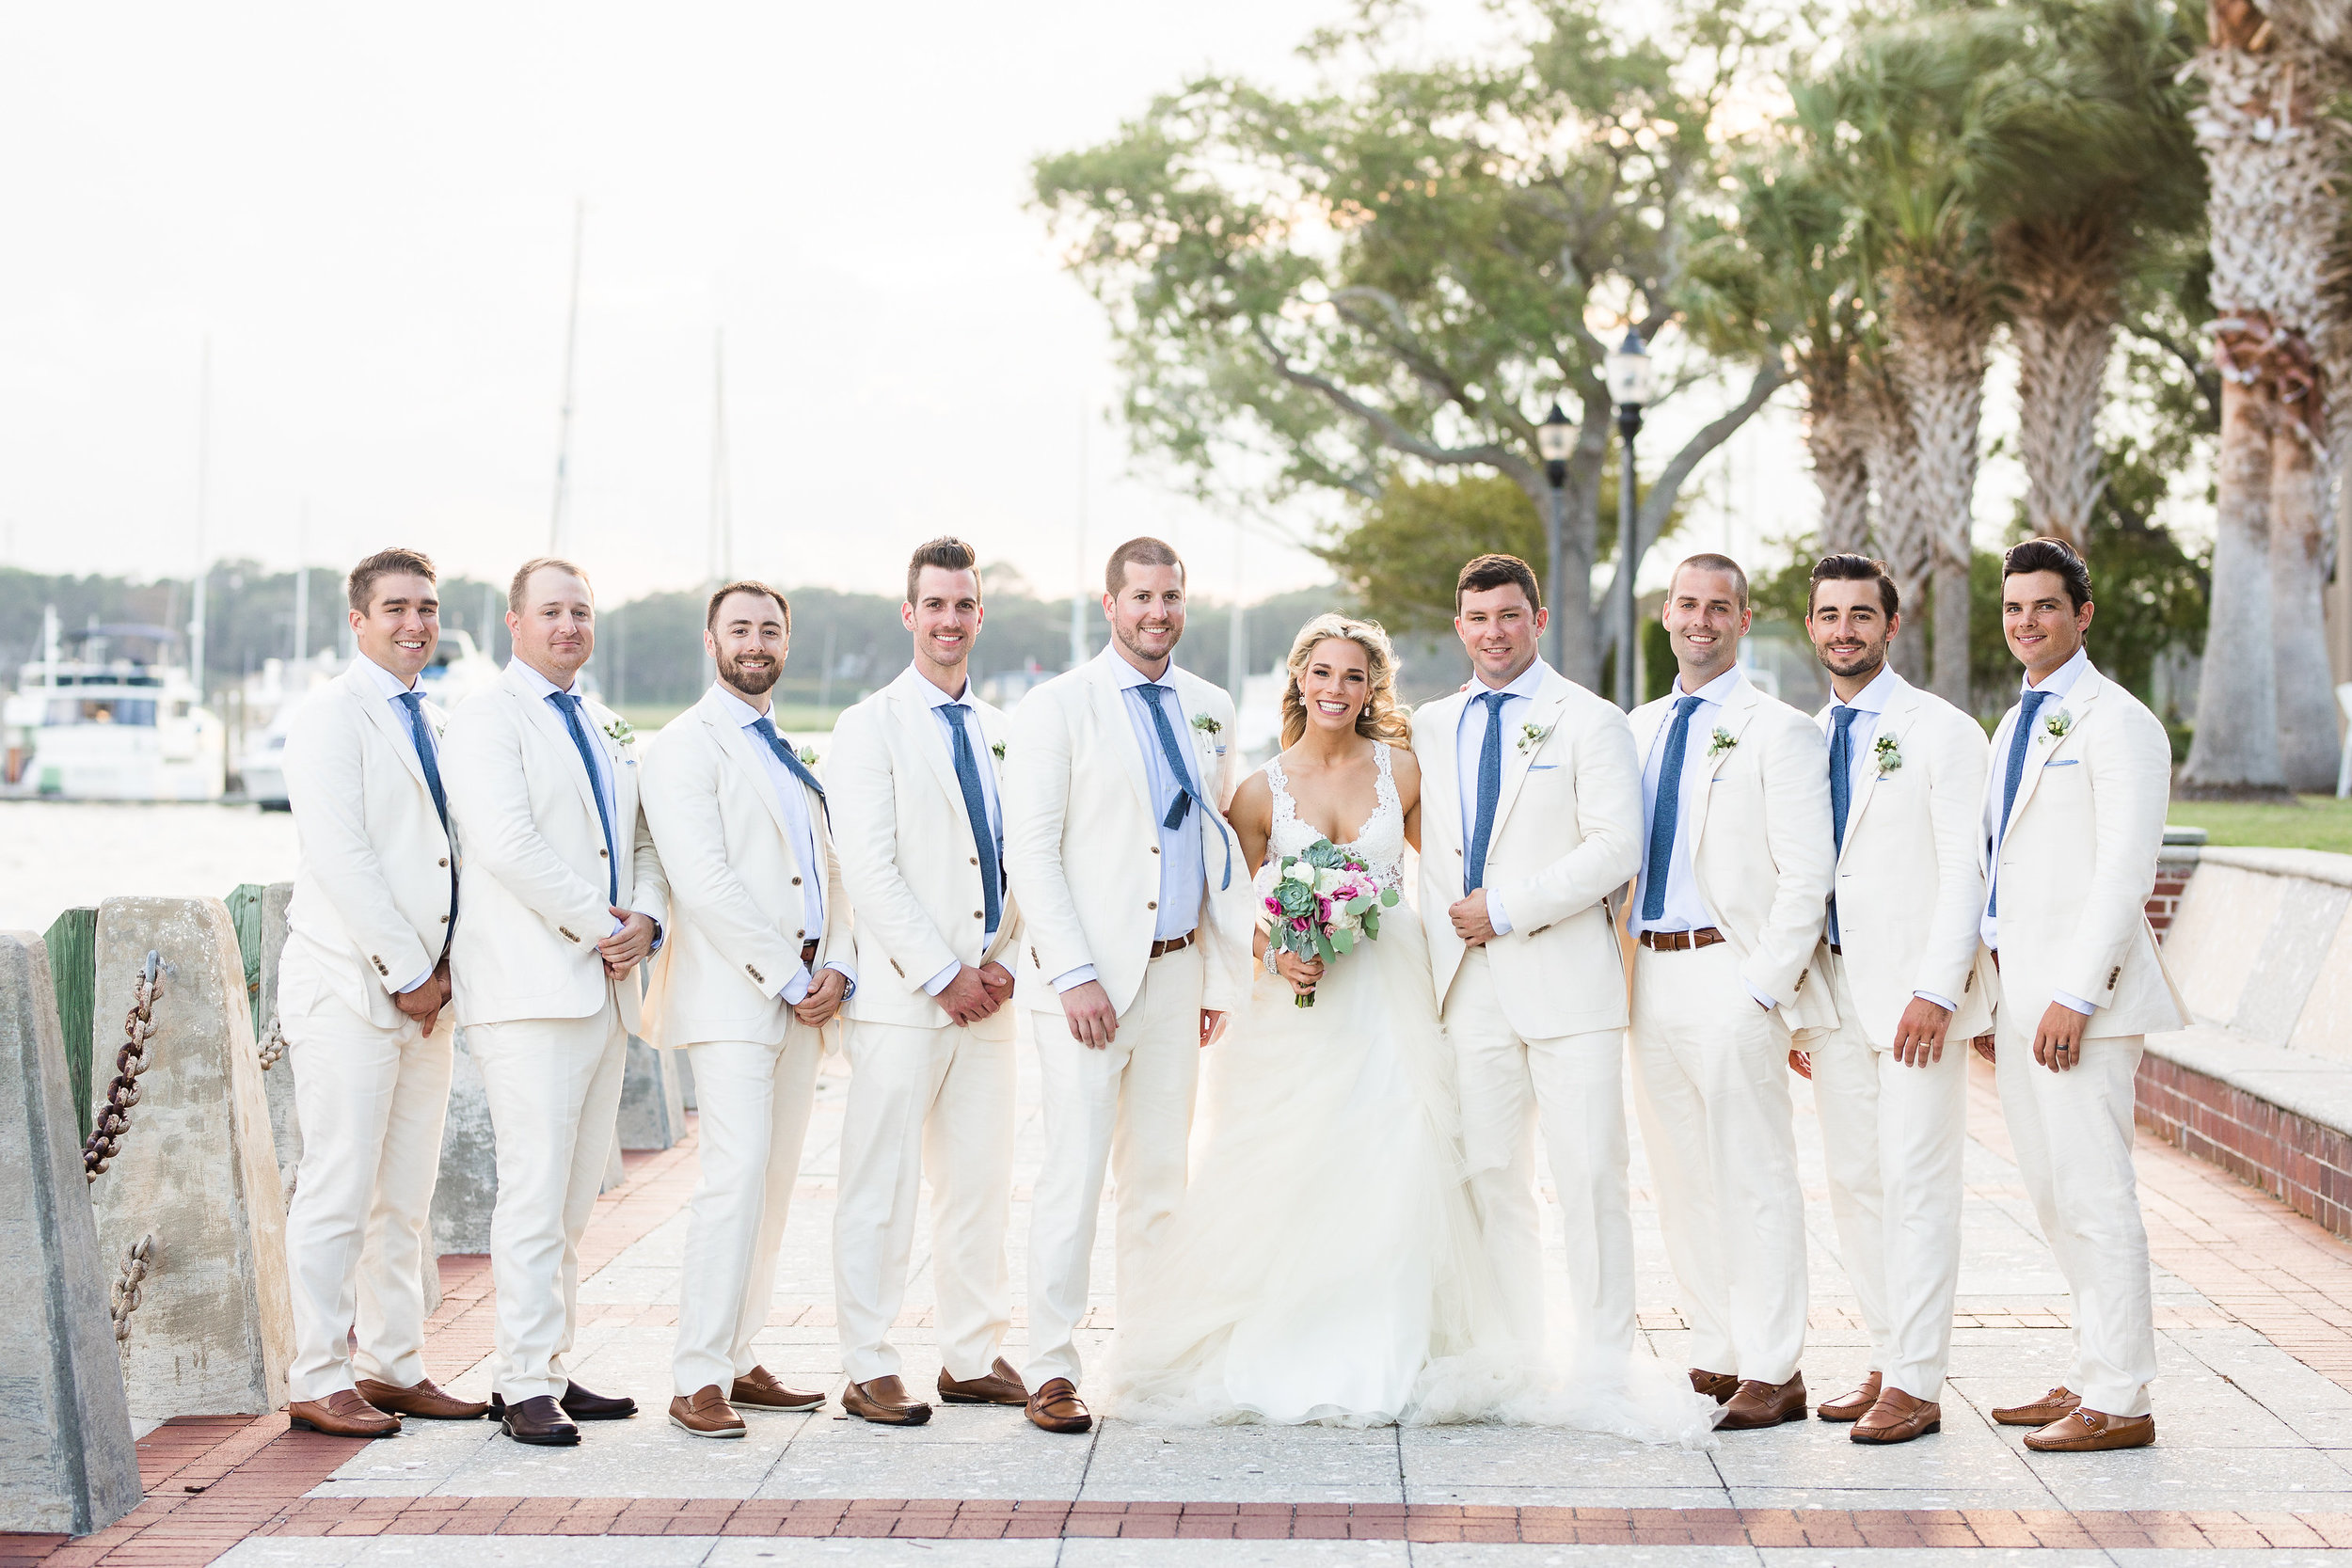 Beaufort SC groomsmen in linen suits with light blue shirts and dark blue ties  //  Hilton Head wedding photos by Garter + Whiskey  Hilton Head bride in Winnie Couture gown in Beaufort SC  //  A Lowcountry Wedding Magazine